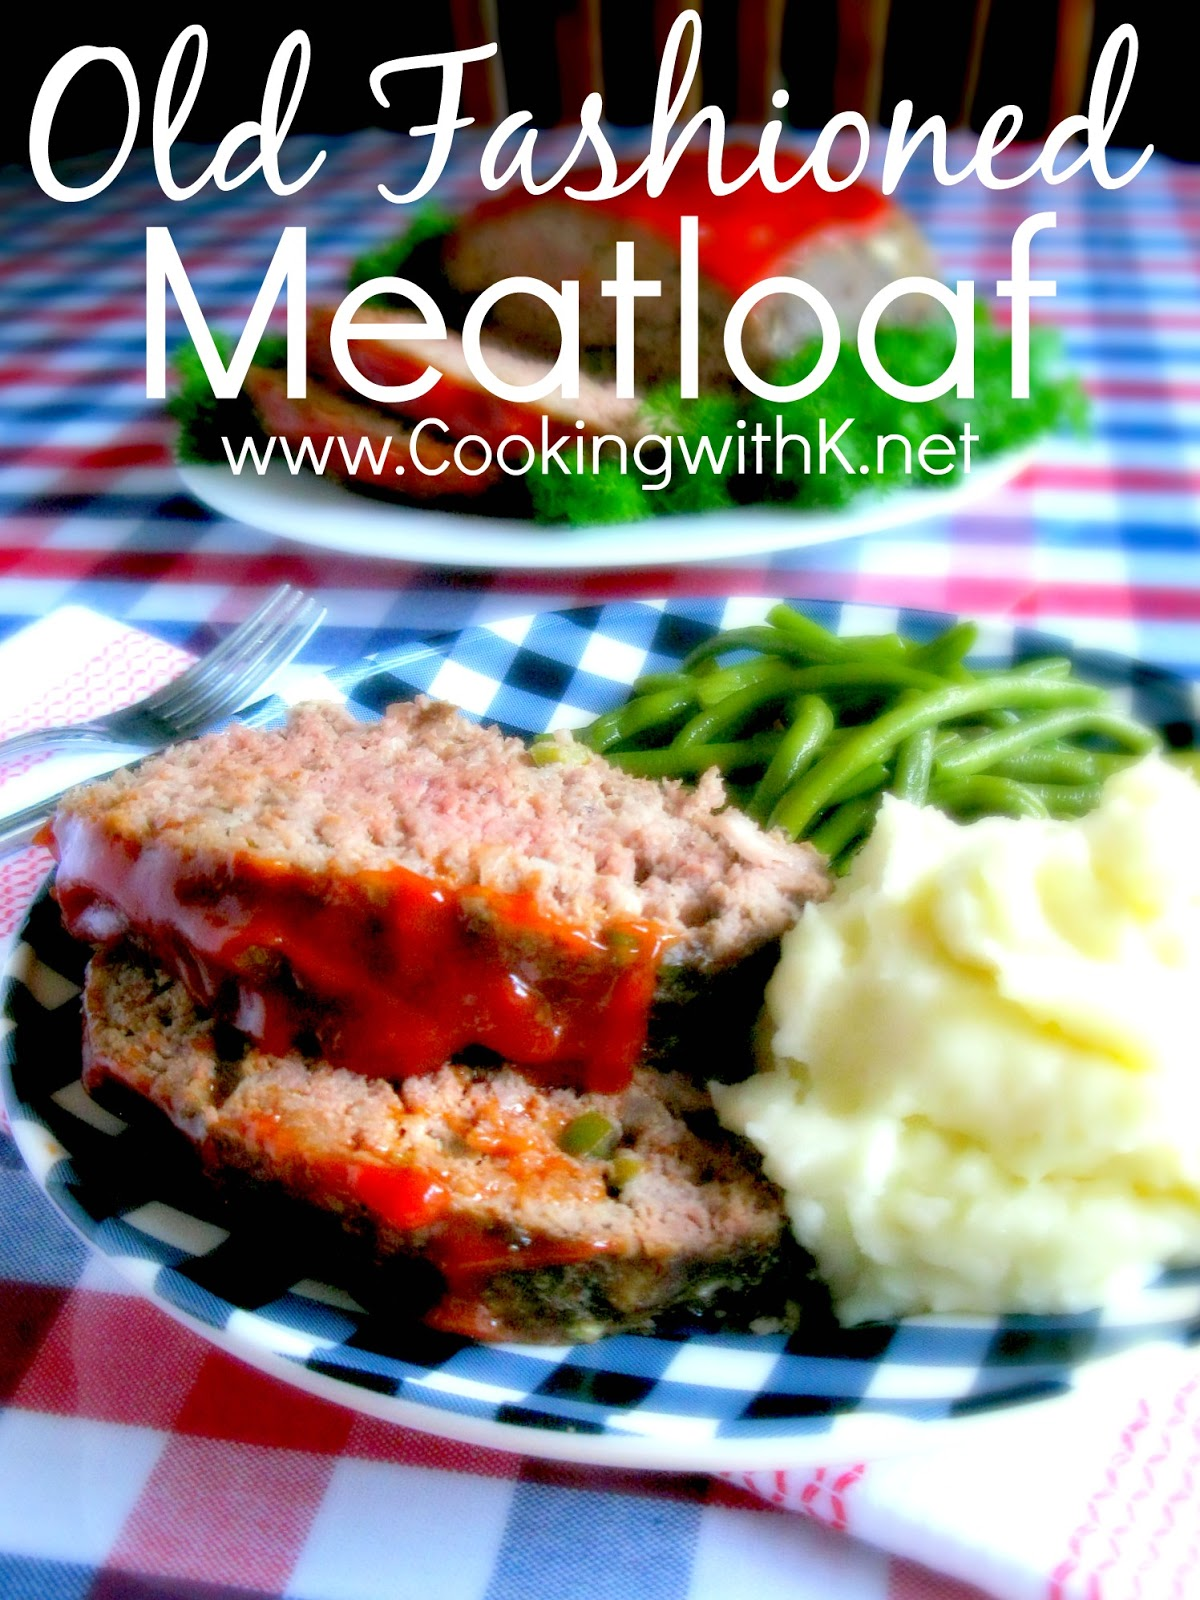 Ina Meatloaf cooking with k: grandmother's old fashioned meatloaf {cooked in a